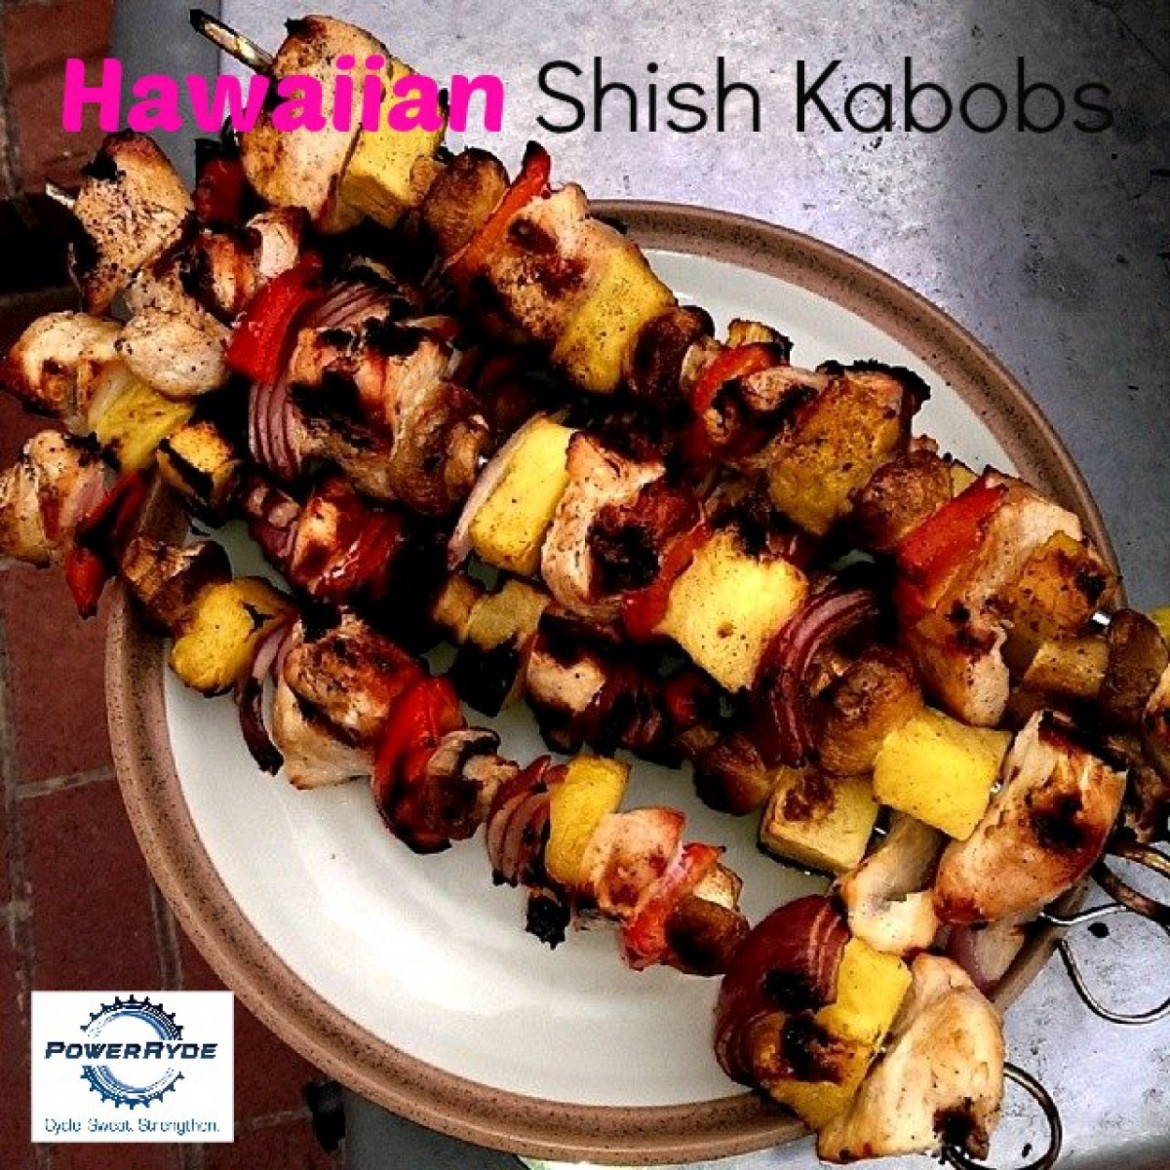 Hawaiian Shish Kabobs